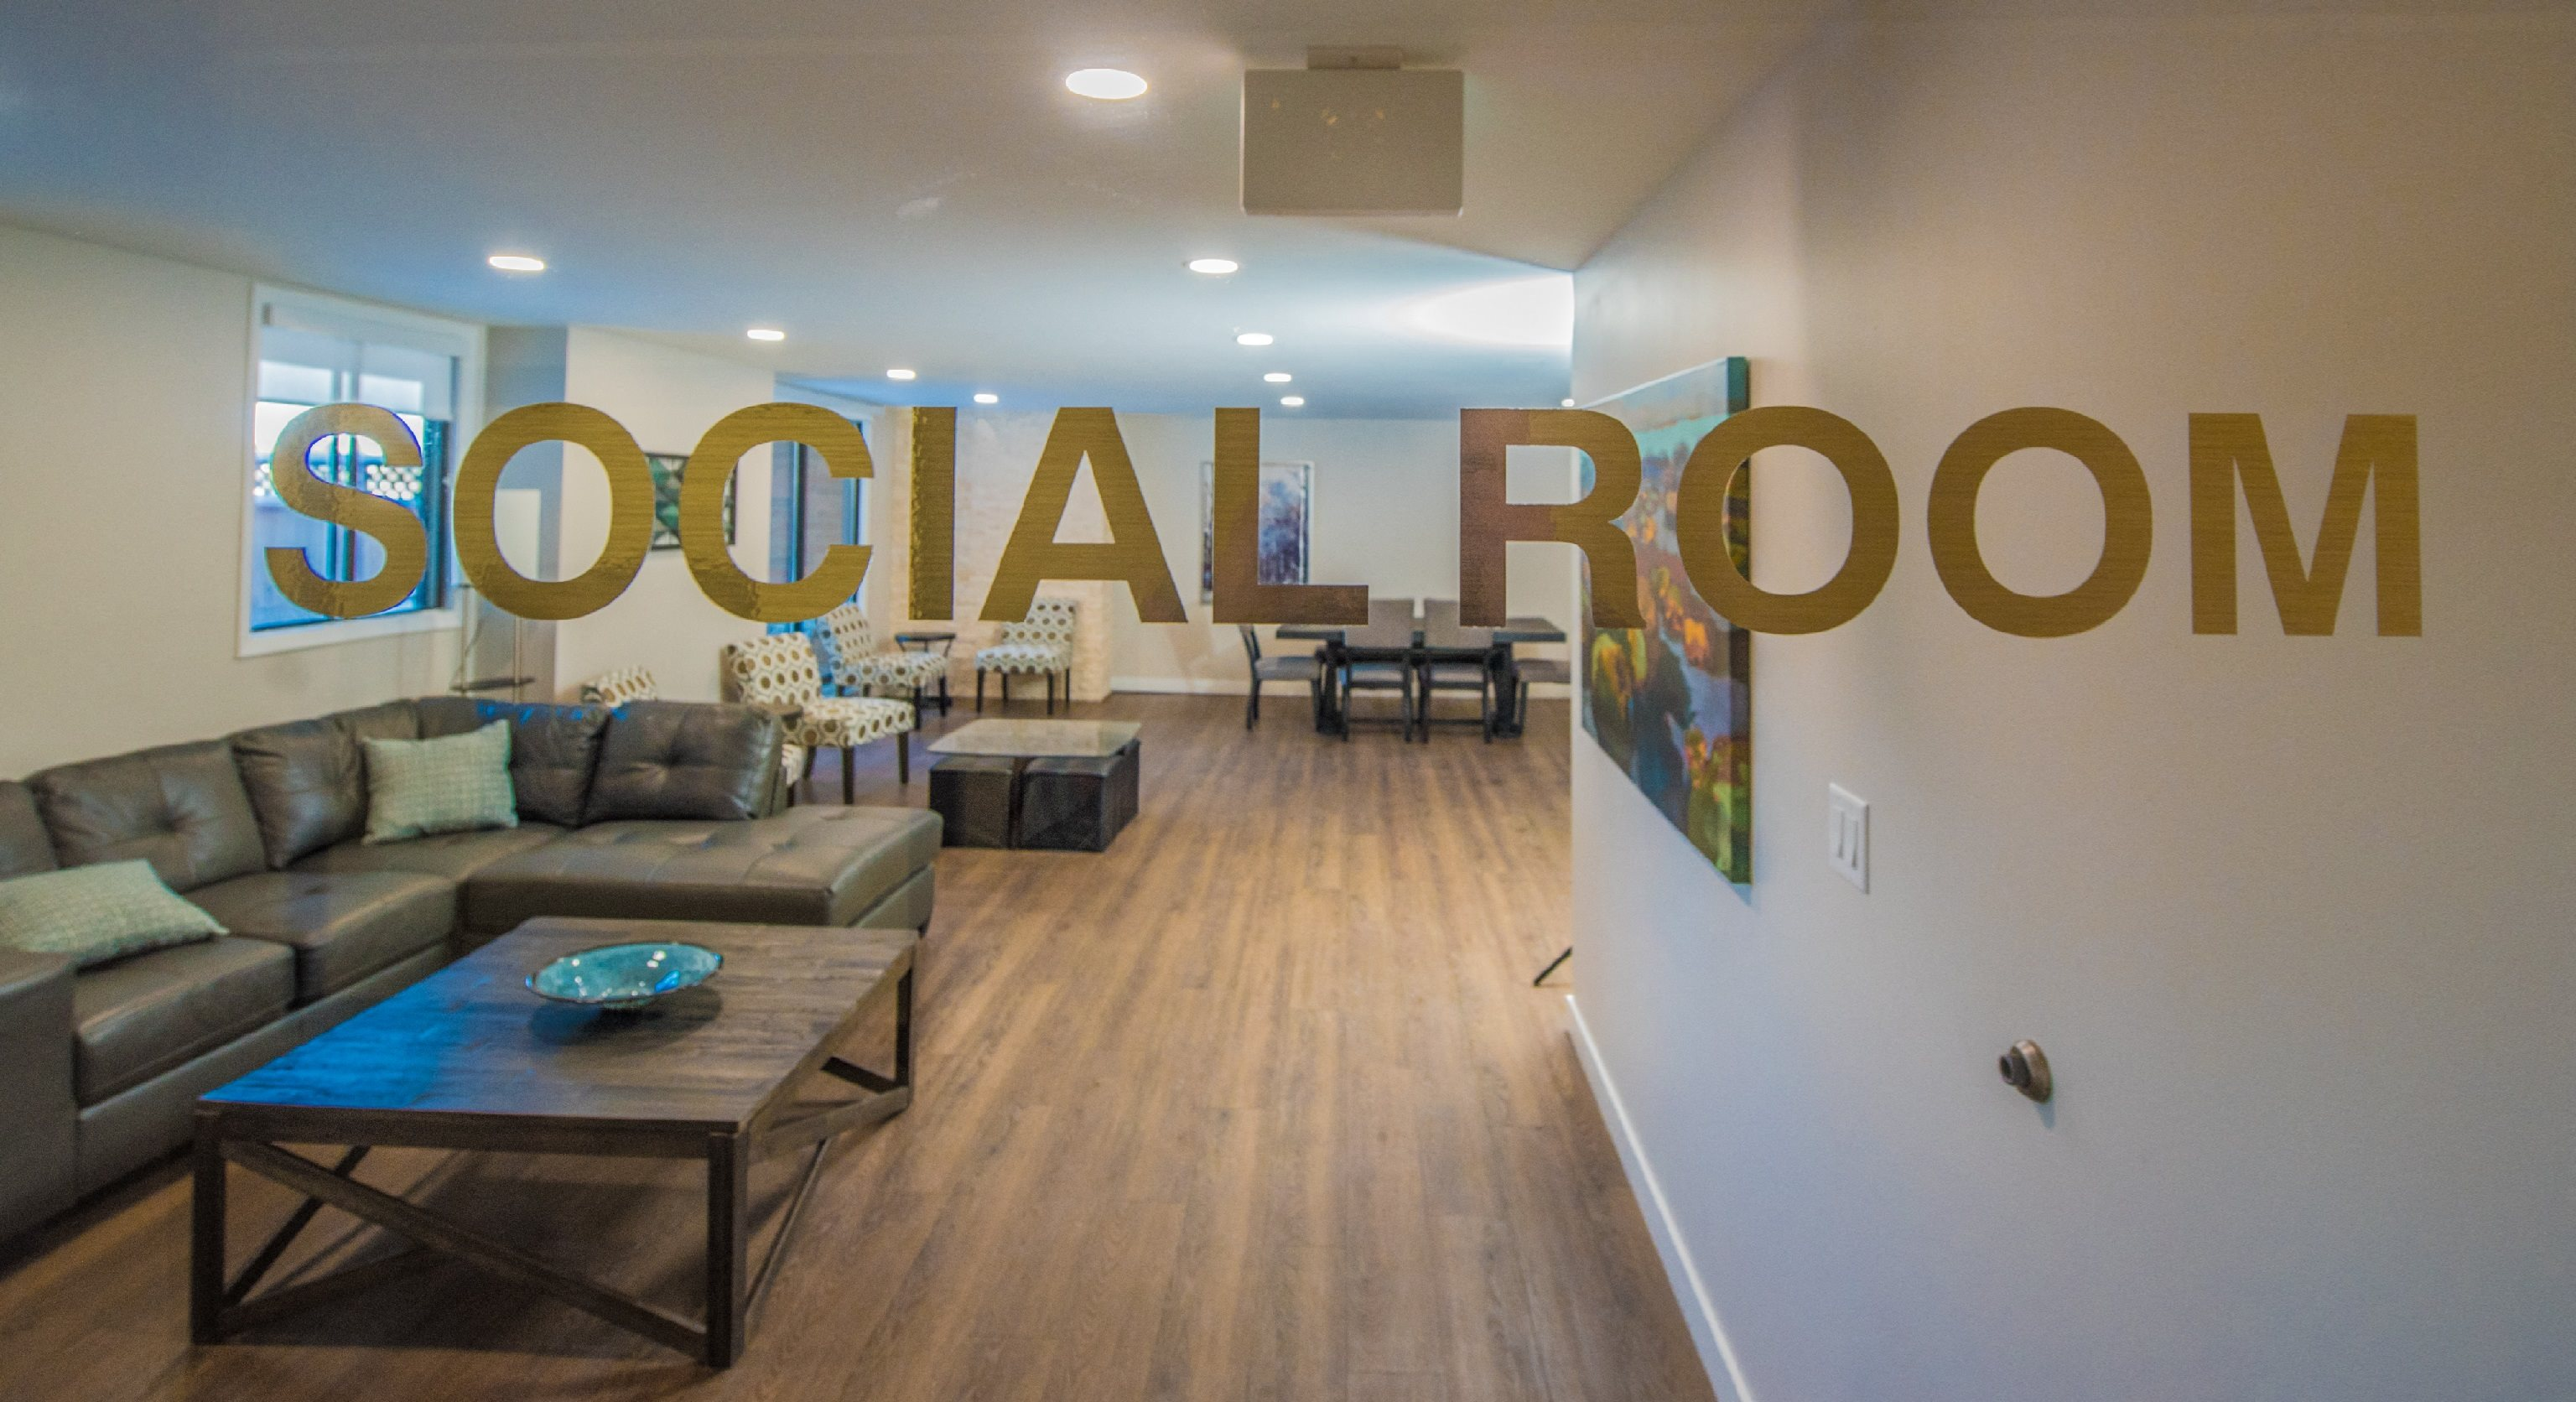 Enjoy Our New Social Room